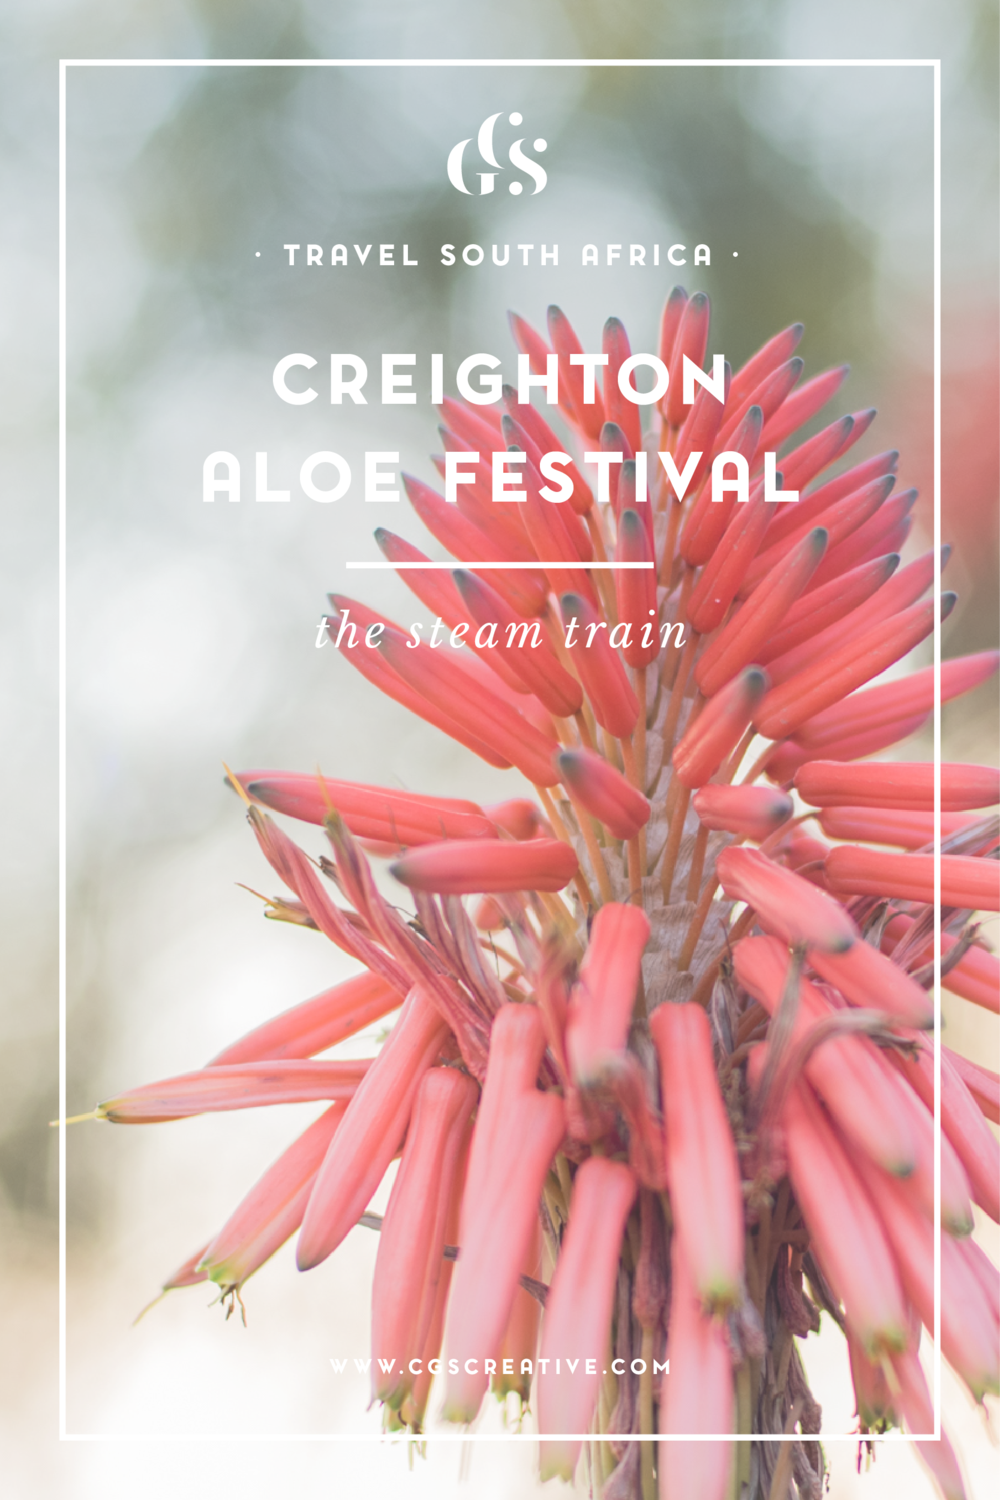 Creighton Aloe Festival Steam Train, Things to do in KZN, Creighton, South Africa Festivals